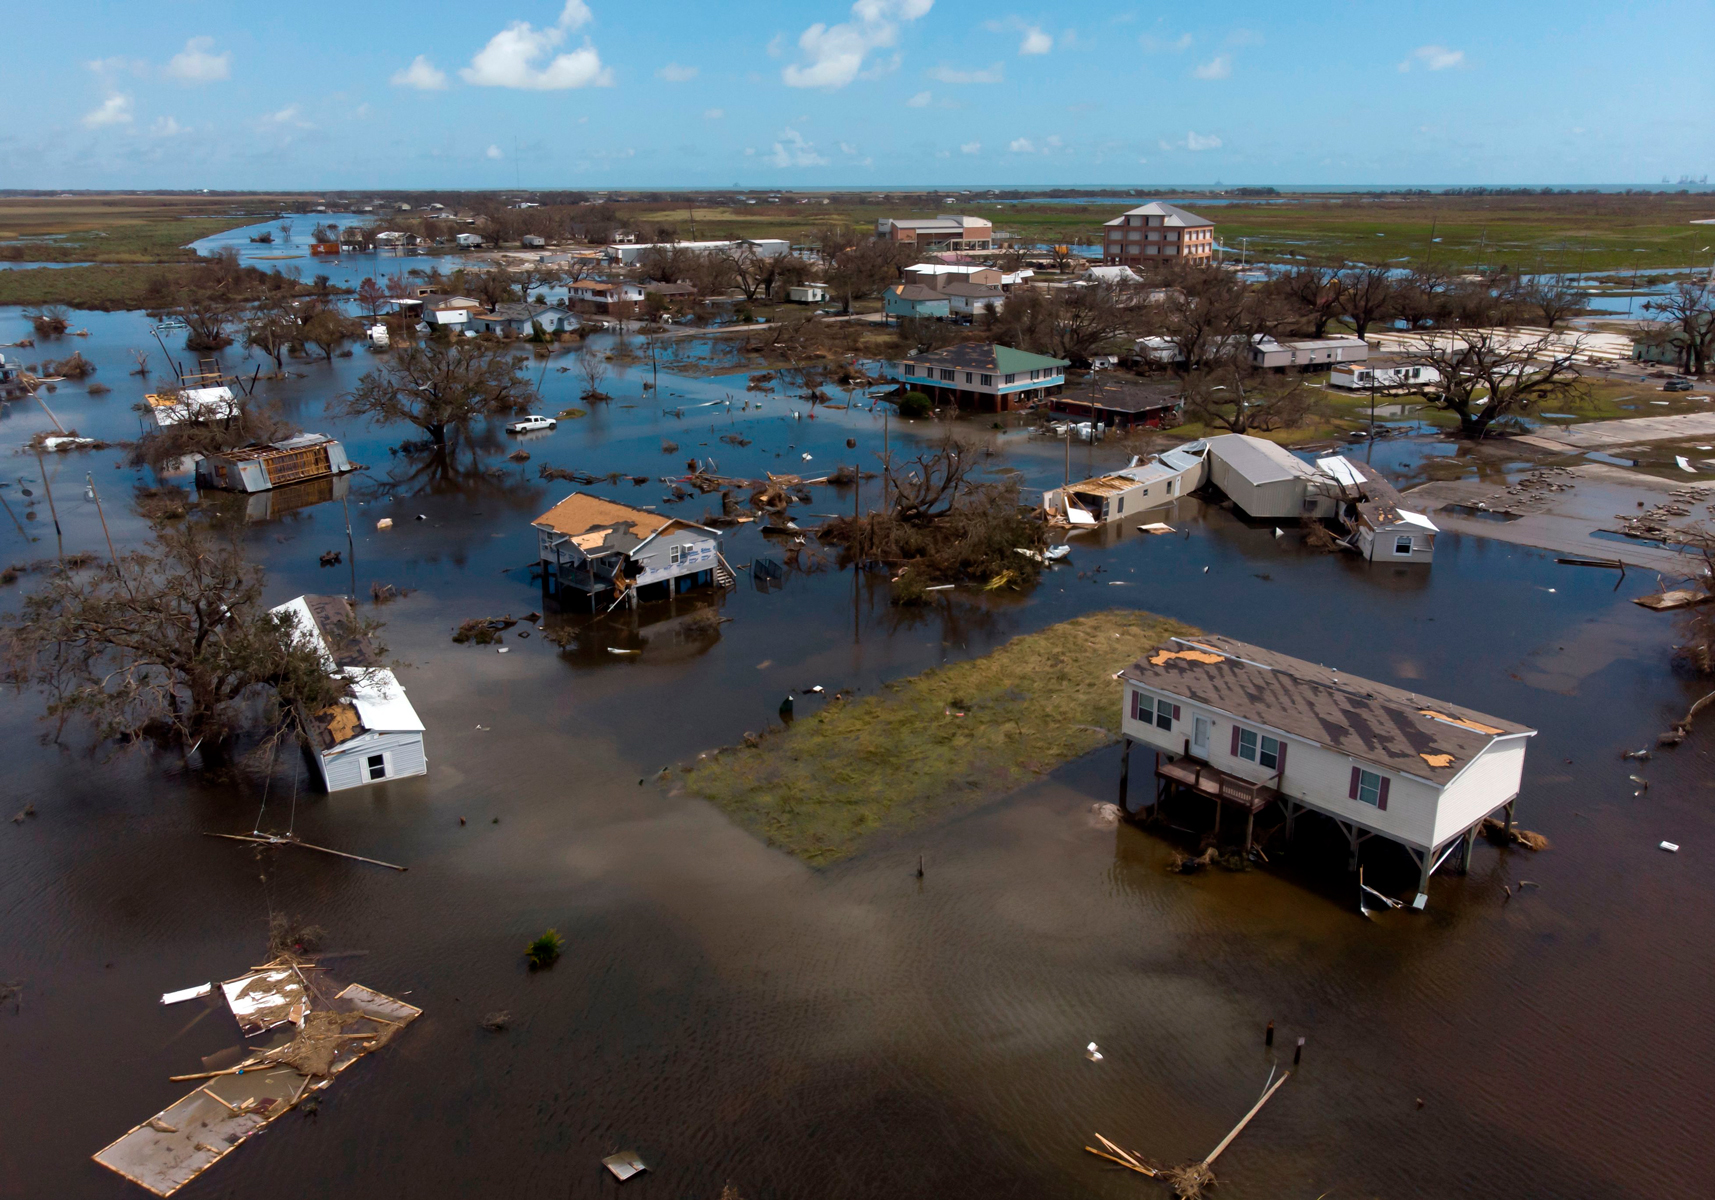 An aerial view shows homes that were destroyed by Hurricane Laura on August 29, 2020 in Cameron, Louisiana.